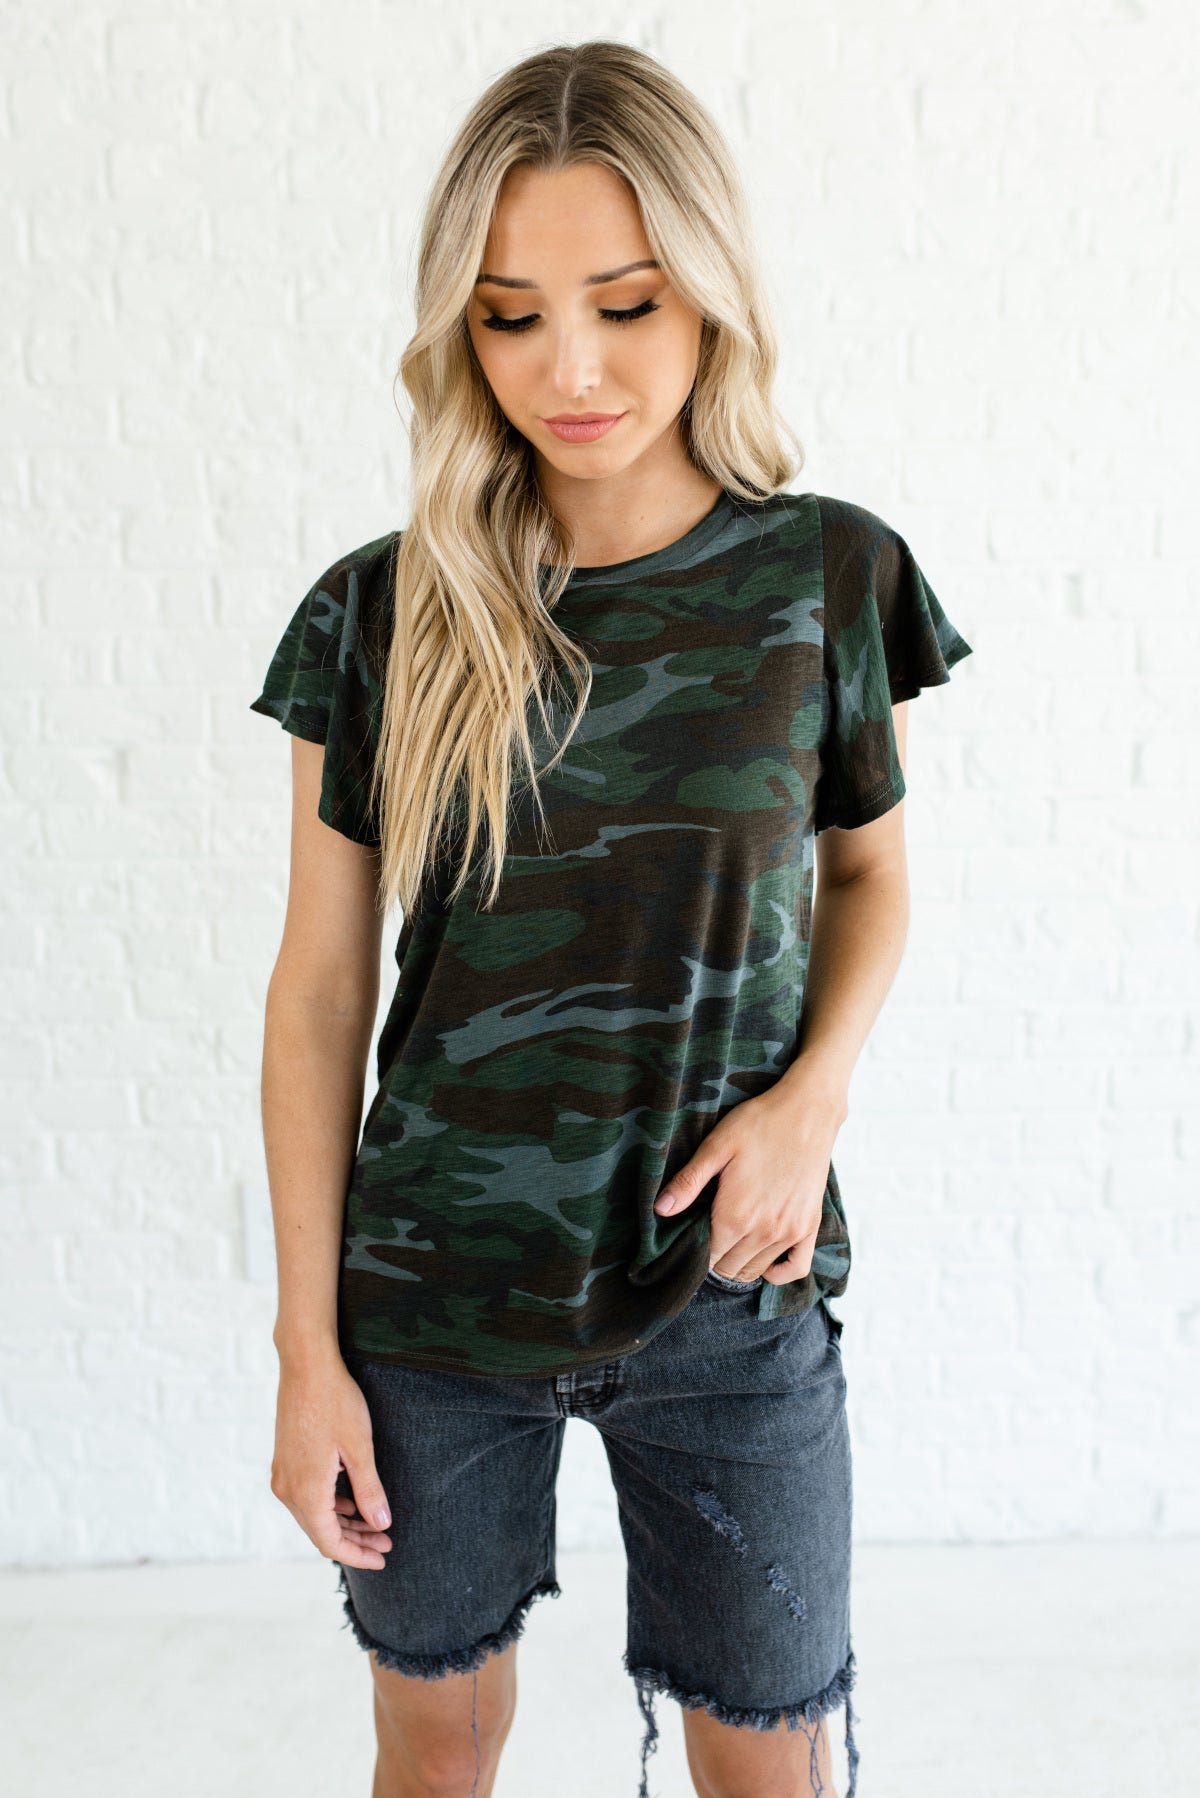 Green, Brown, and Gray Camo Print Boutique Tops for Women